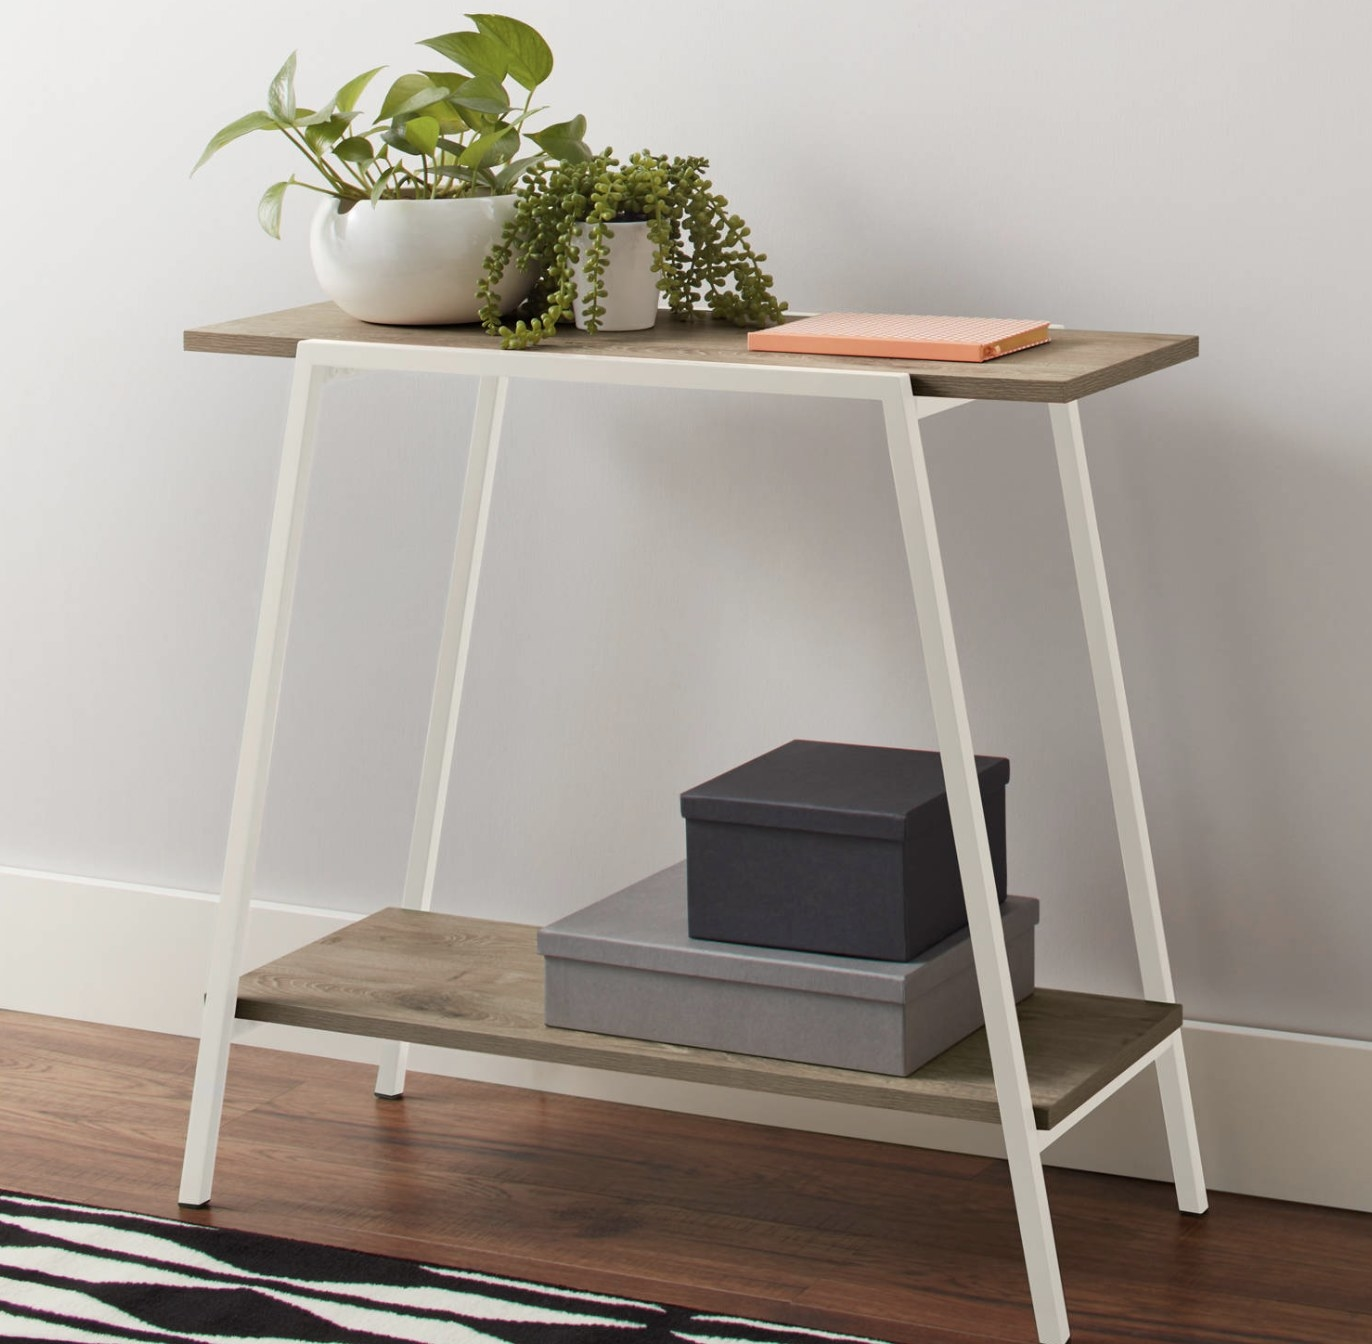 A white and wood console table